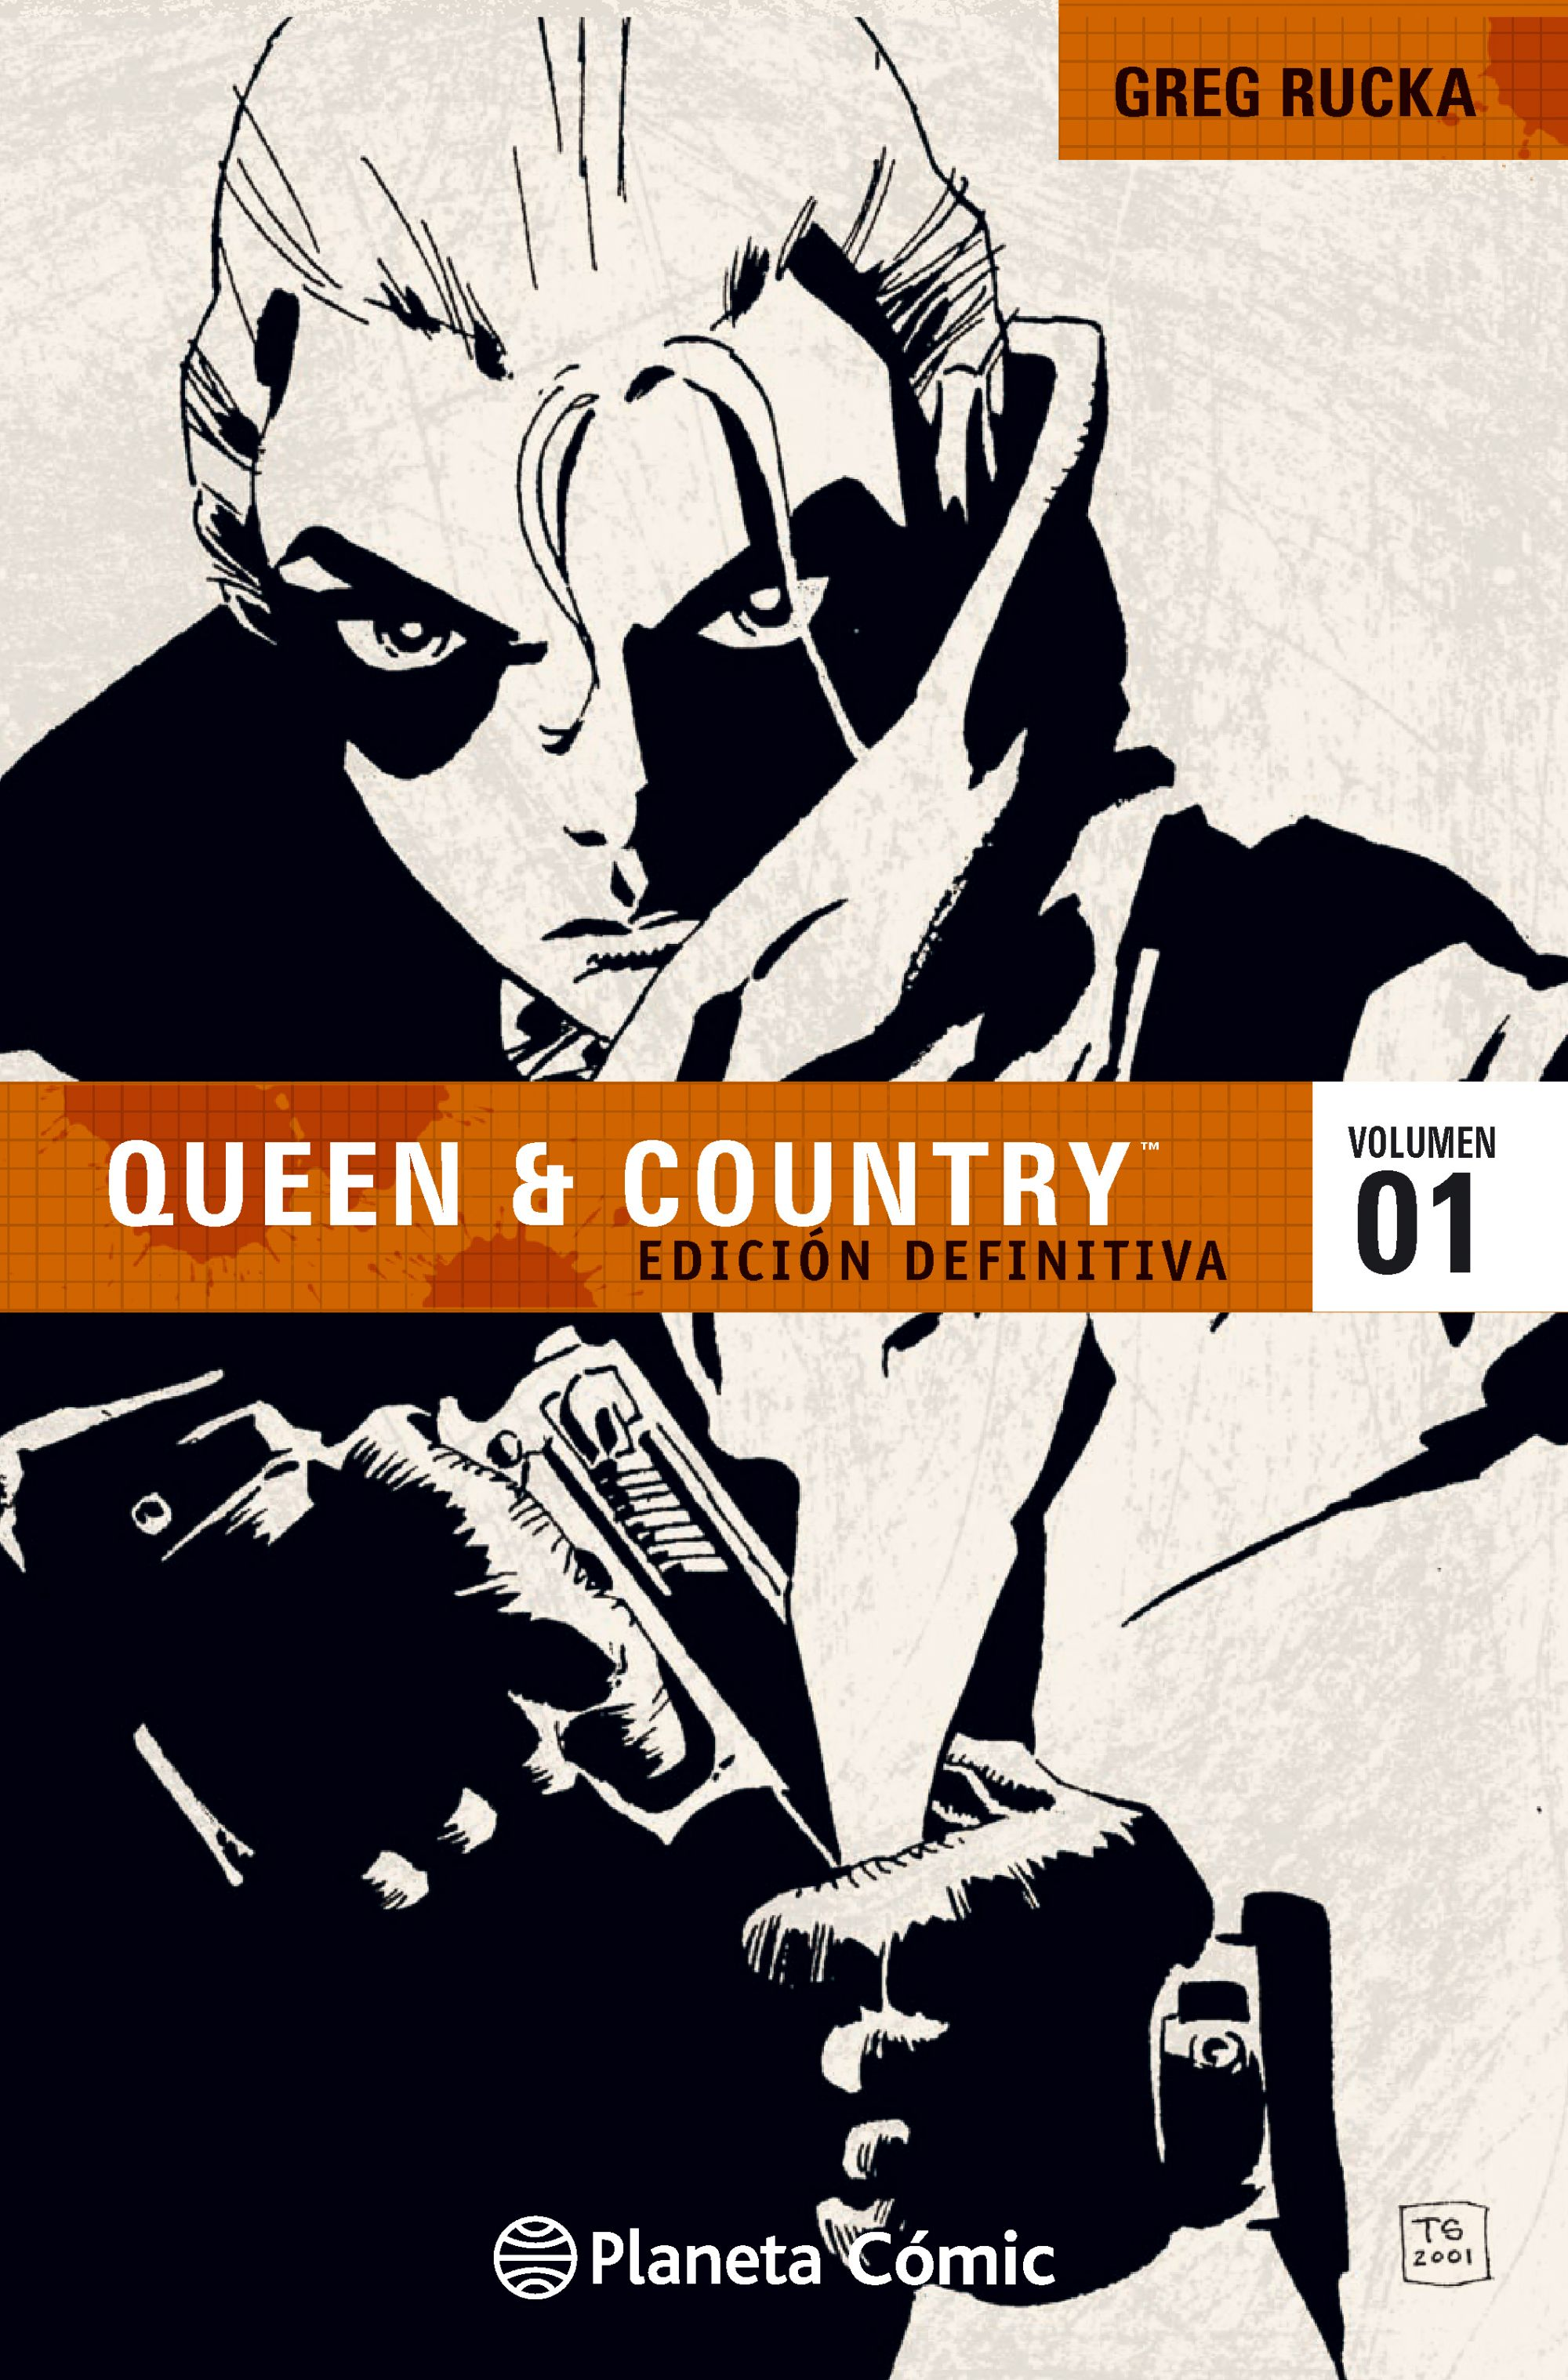 portada_queen-and-country-n-01_greg-rucka_201503121807